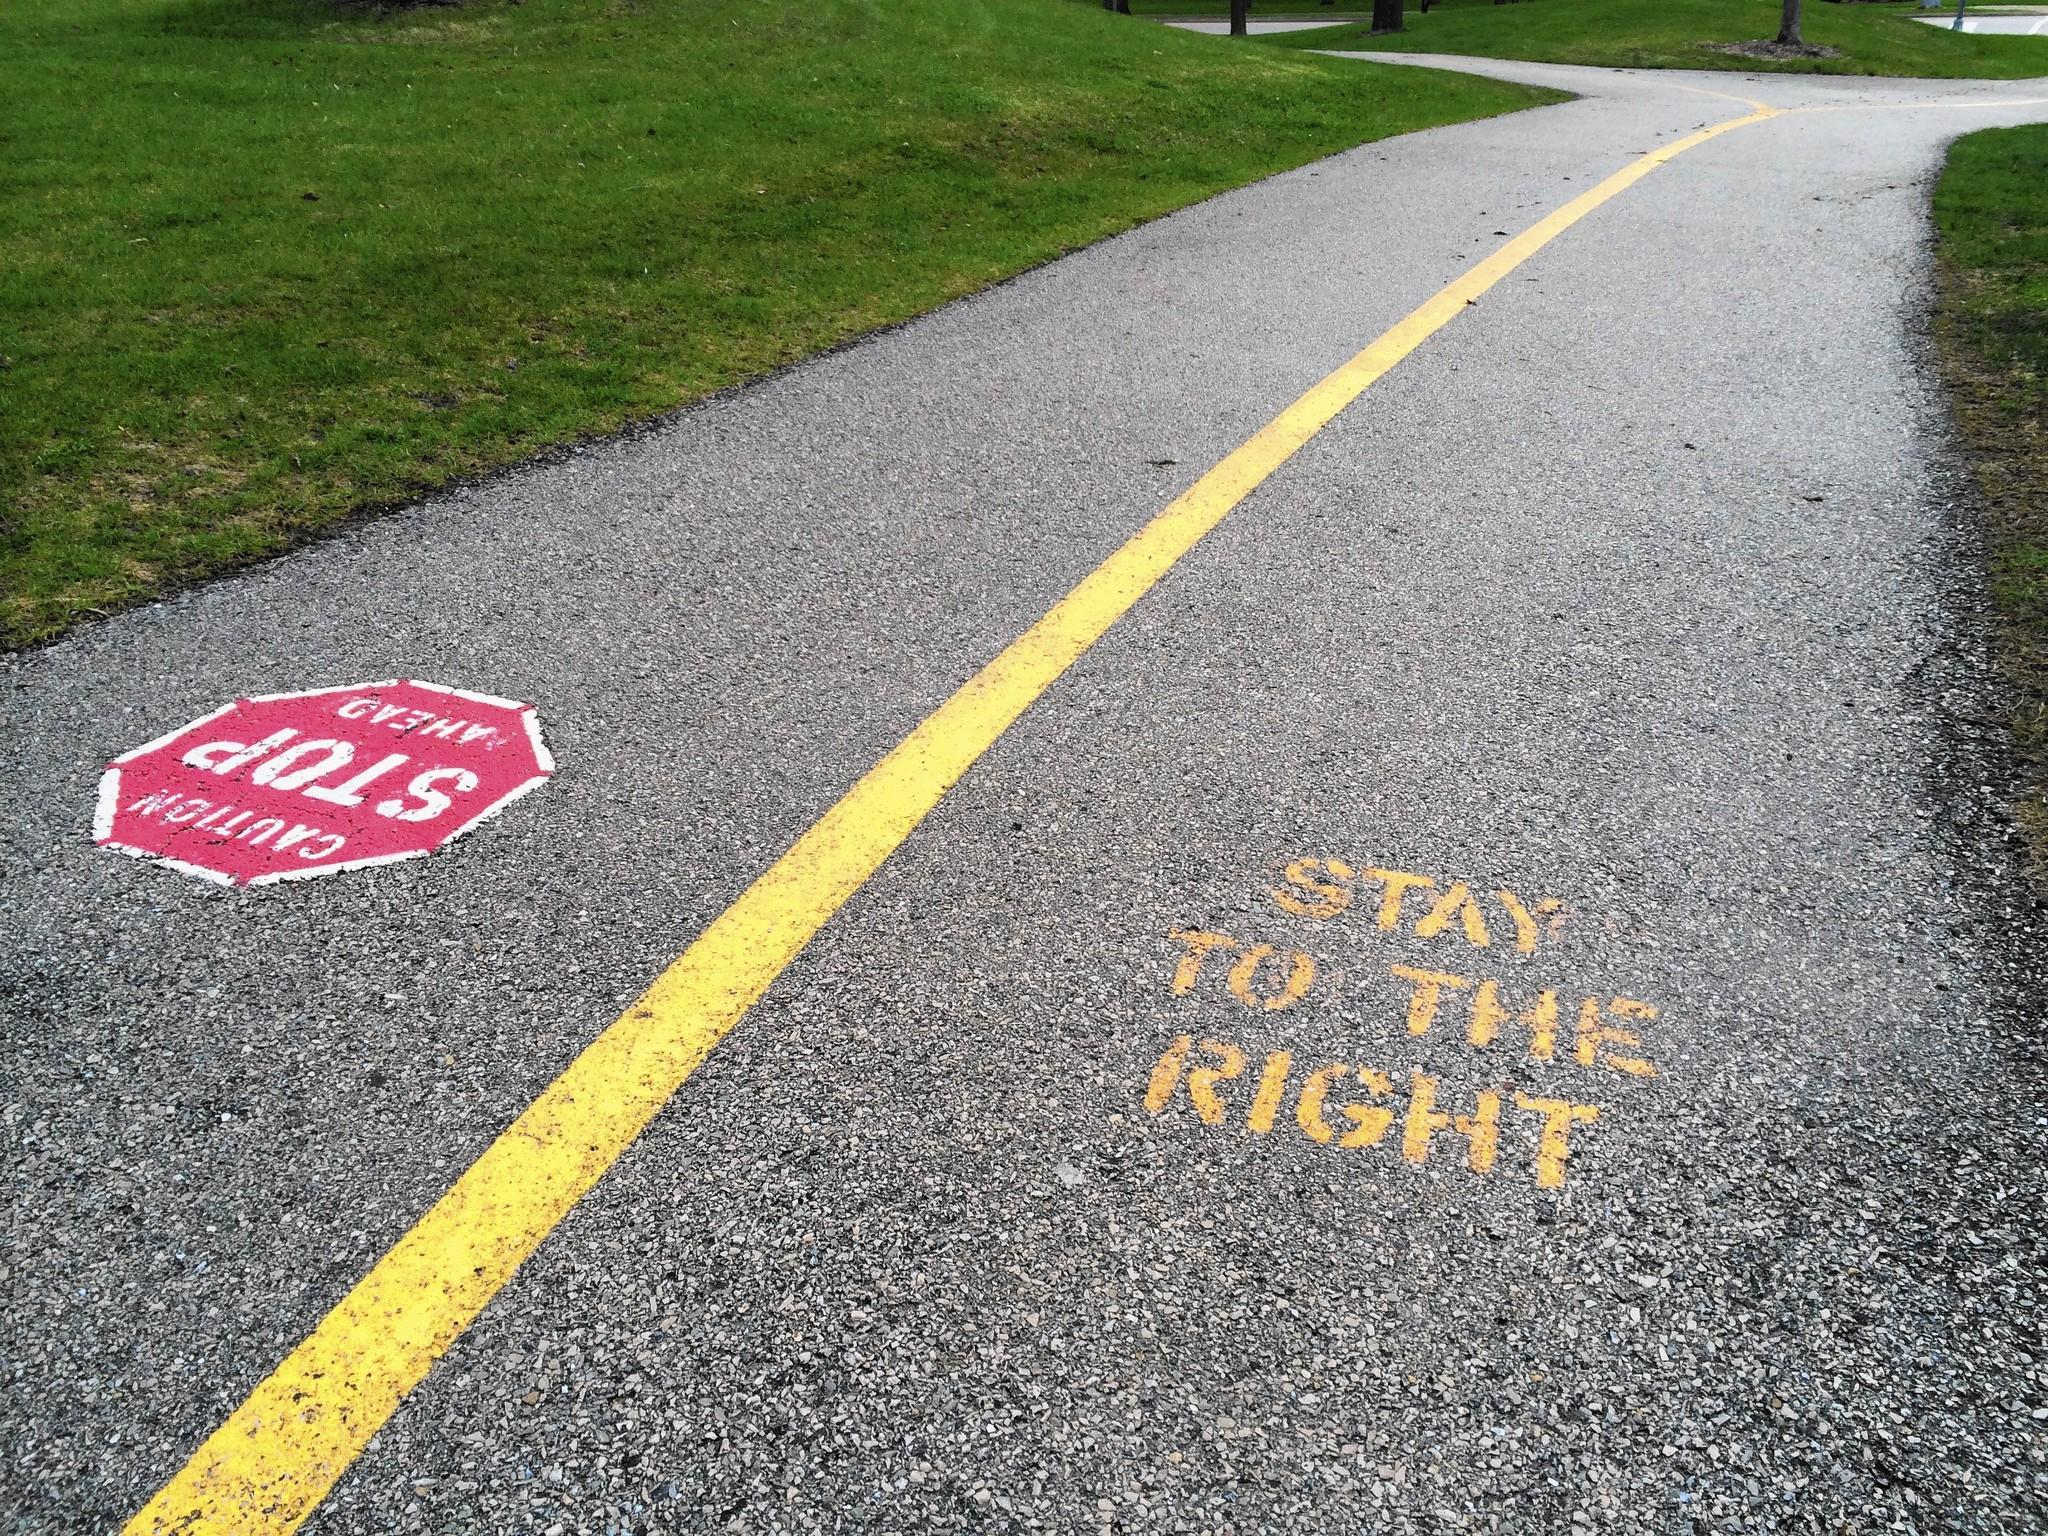 The pathway's directional markings at Lake Arlington weren't well-recieved by the community.